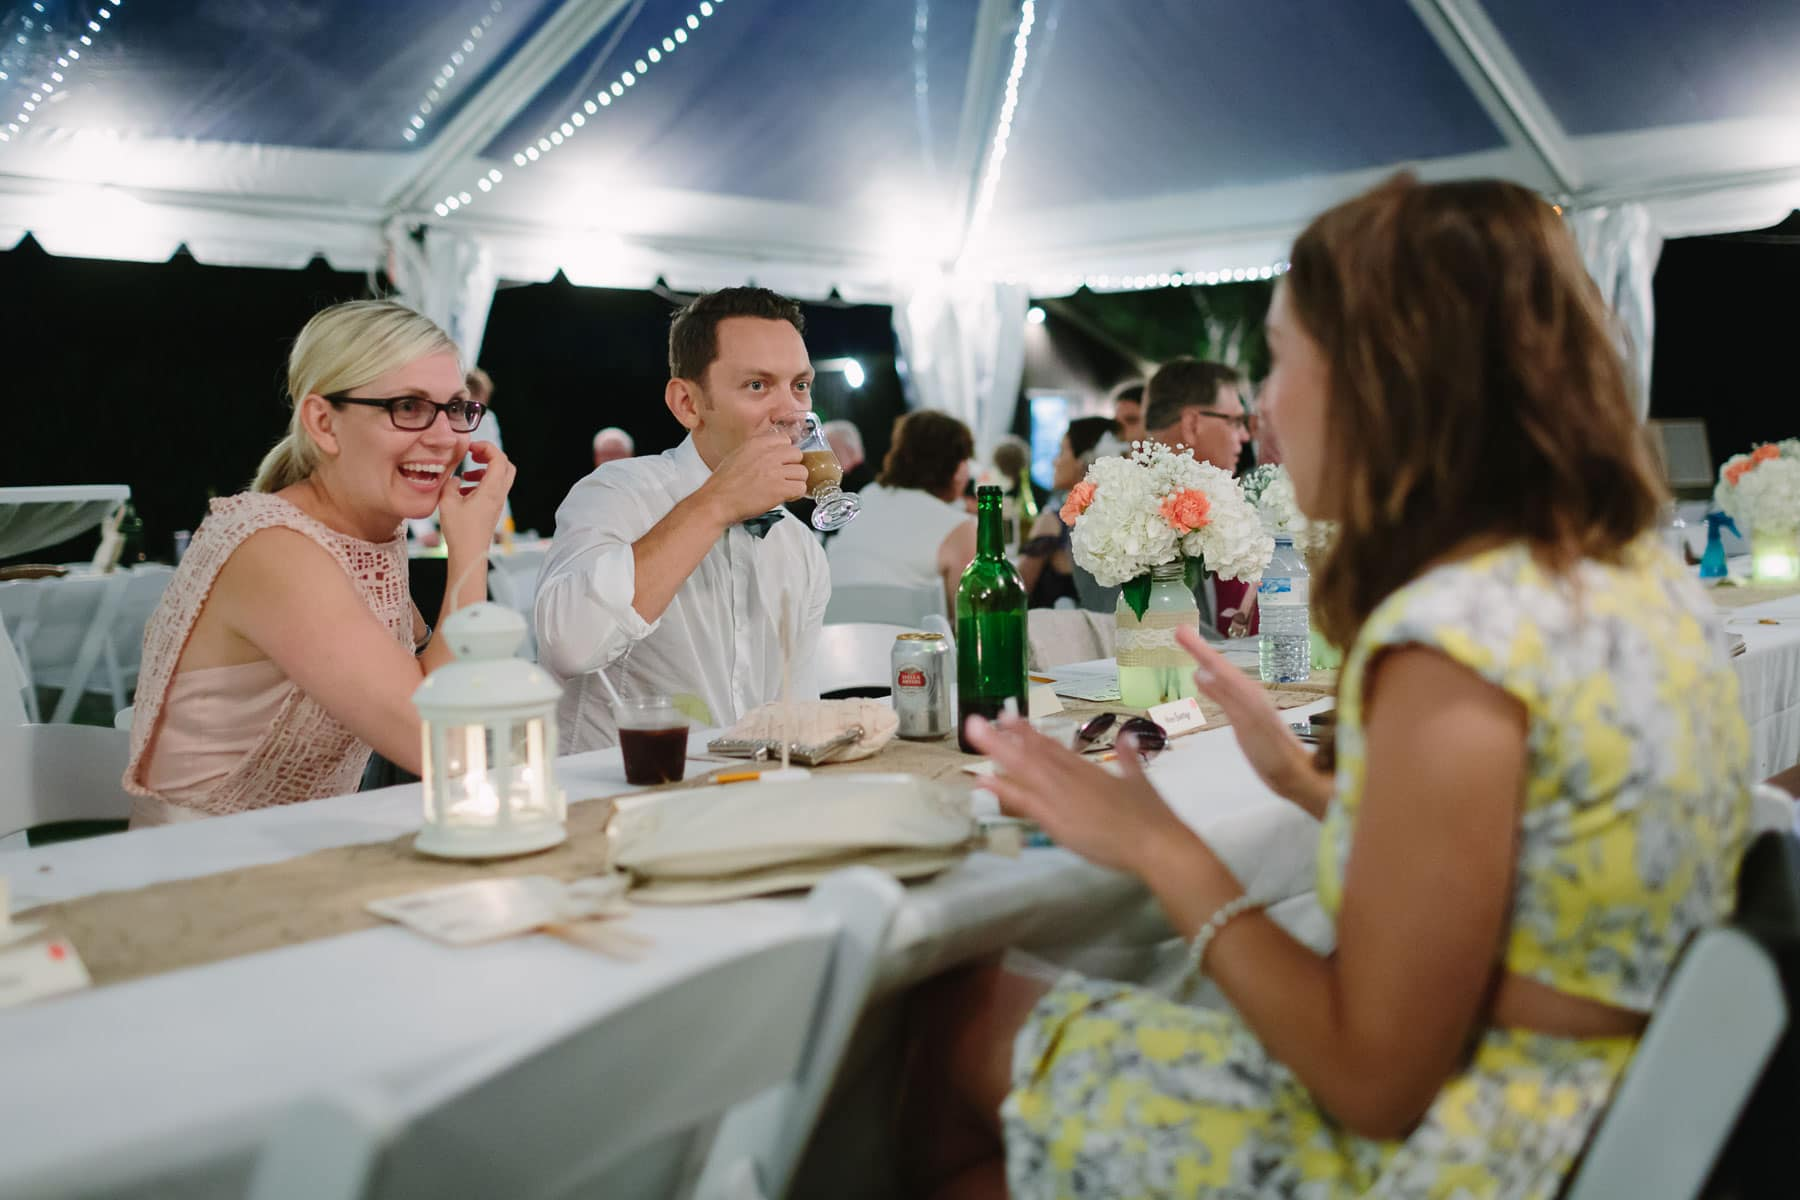 Three guests converse at a table beneath a rental tent in these backyard wedding photos.